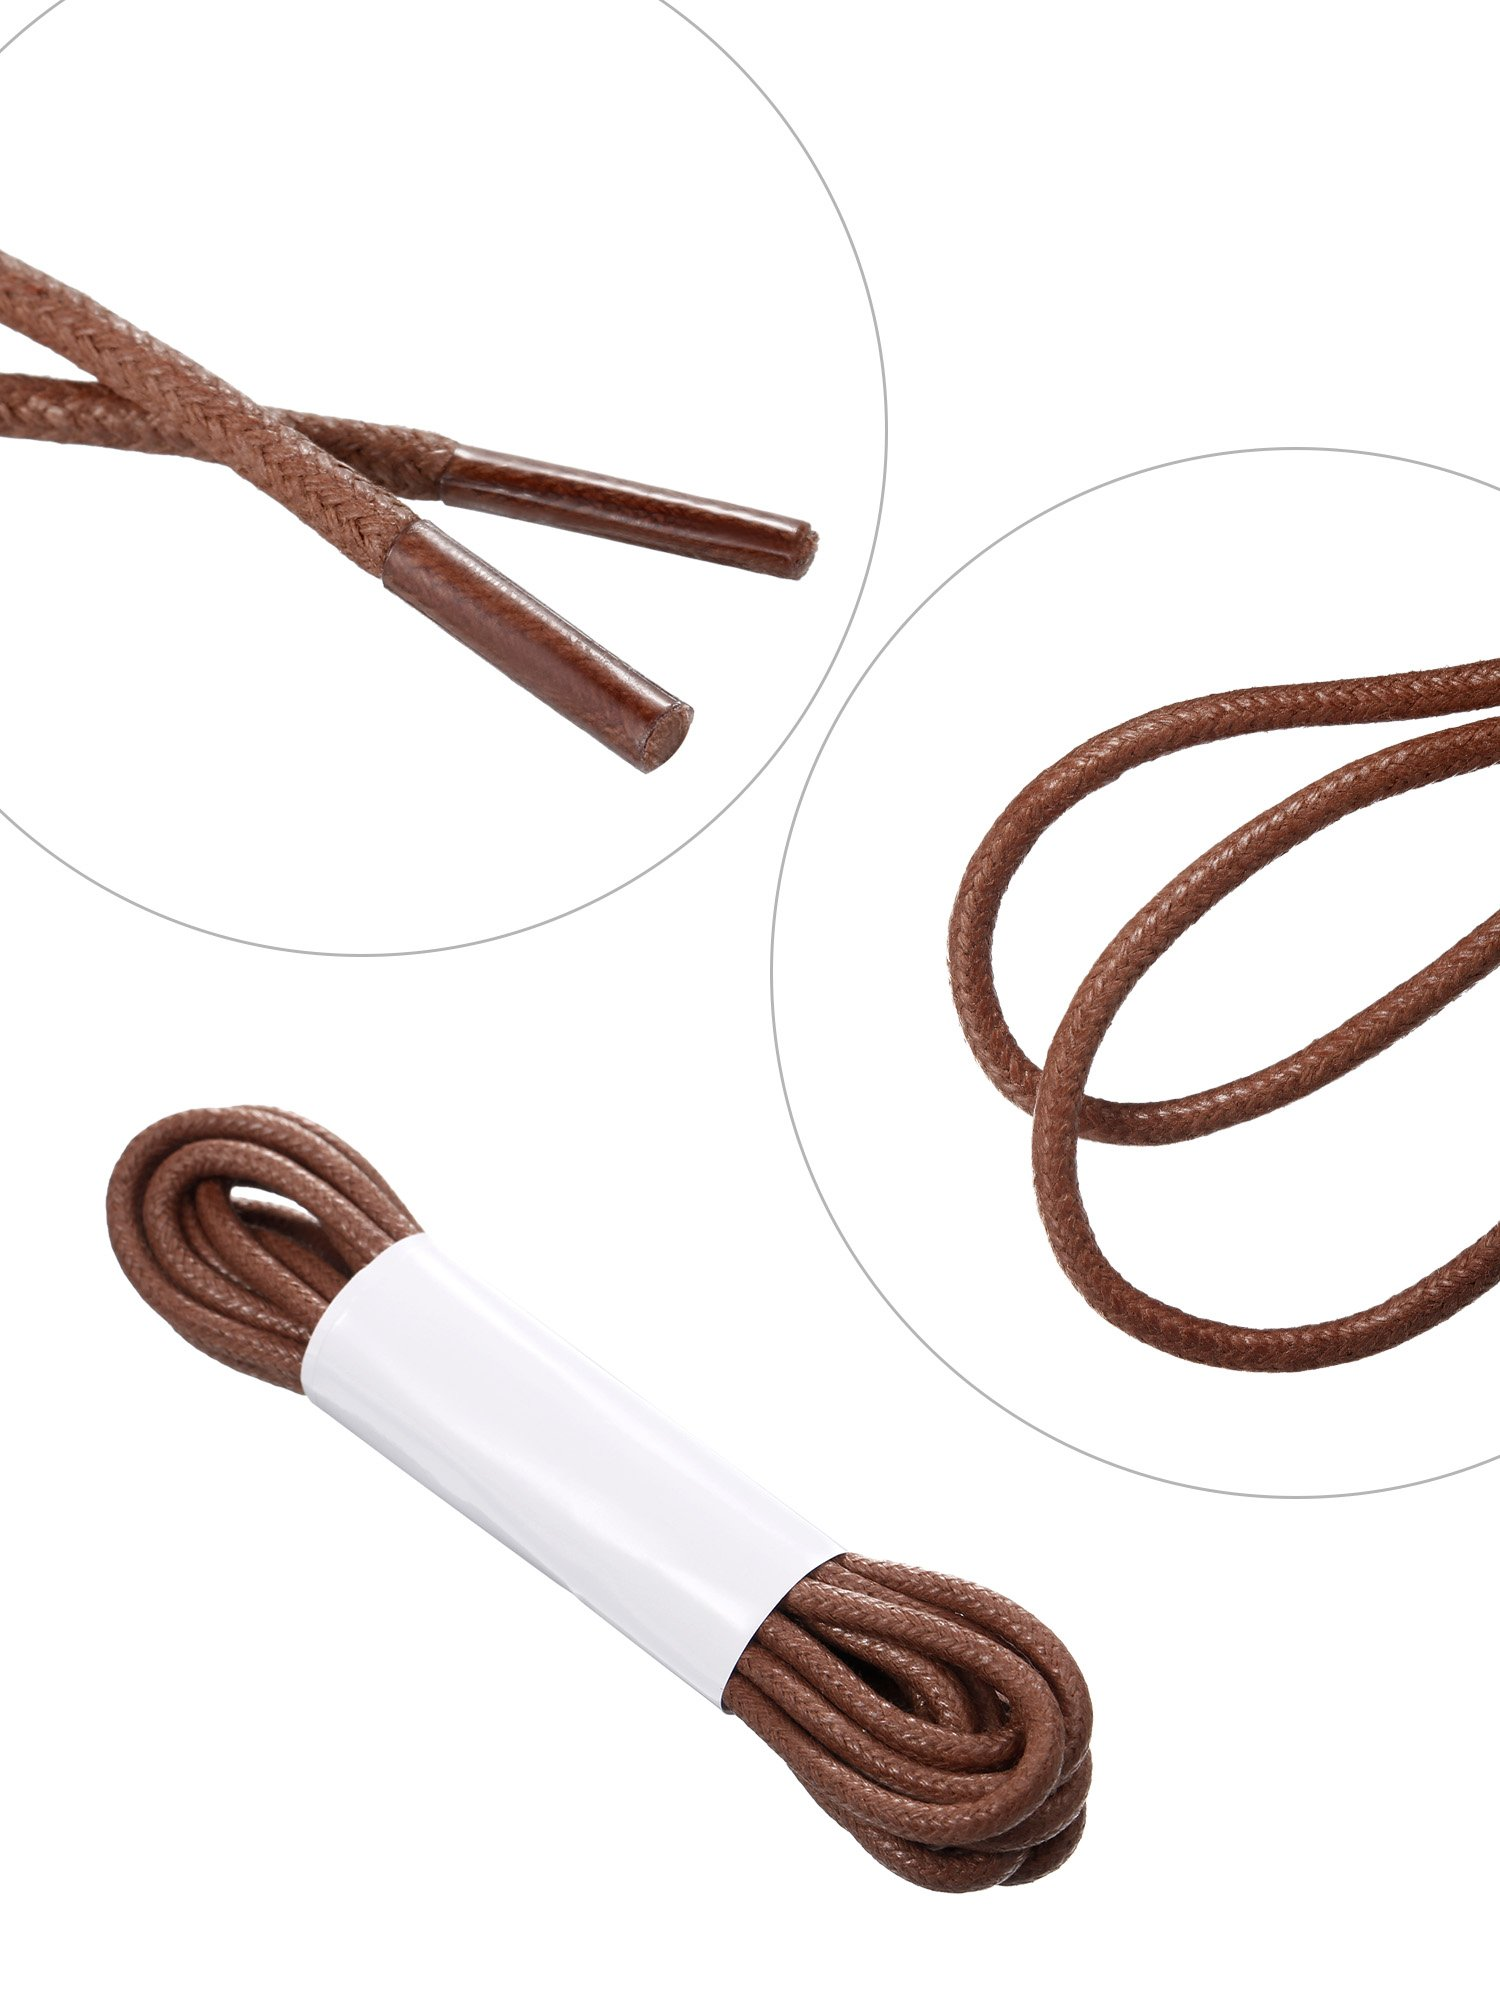 Jovitec Waxed Oxford Shoelaces Cotton Round Waxed Shoe Laces for Dress Shoes, 9 Colors by Jovitec (Image #3)